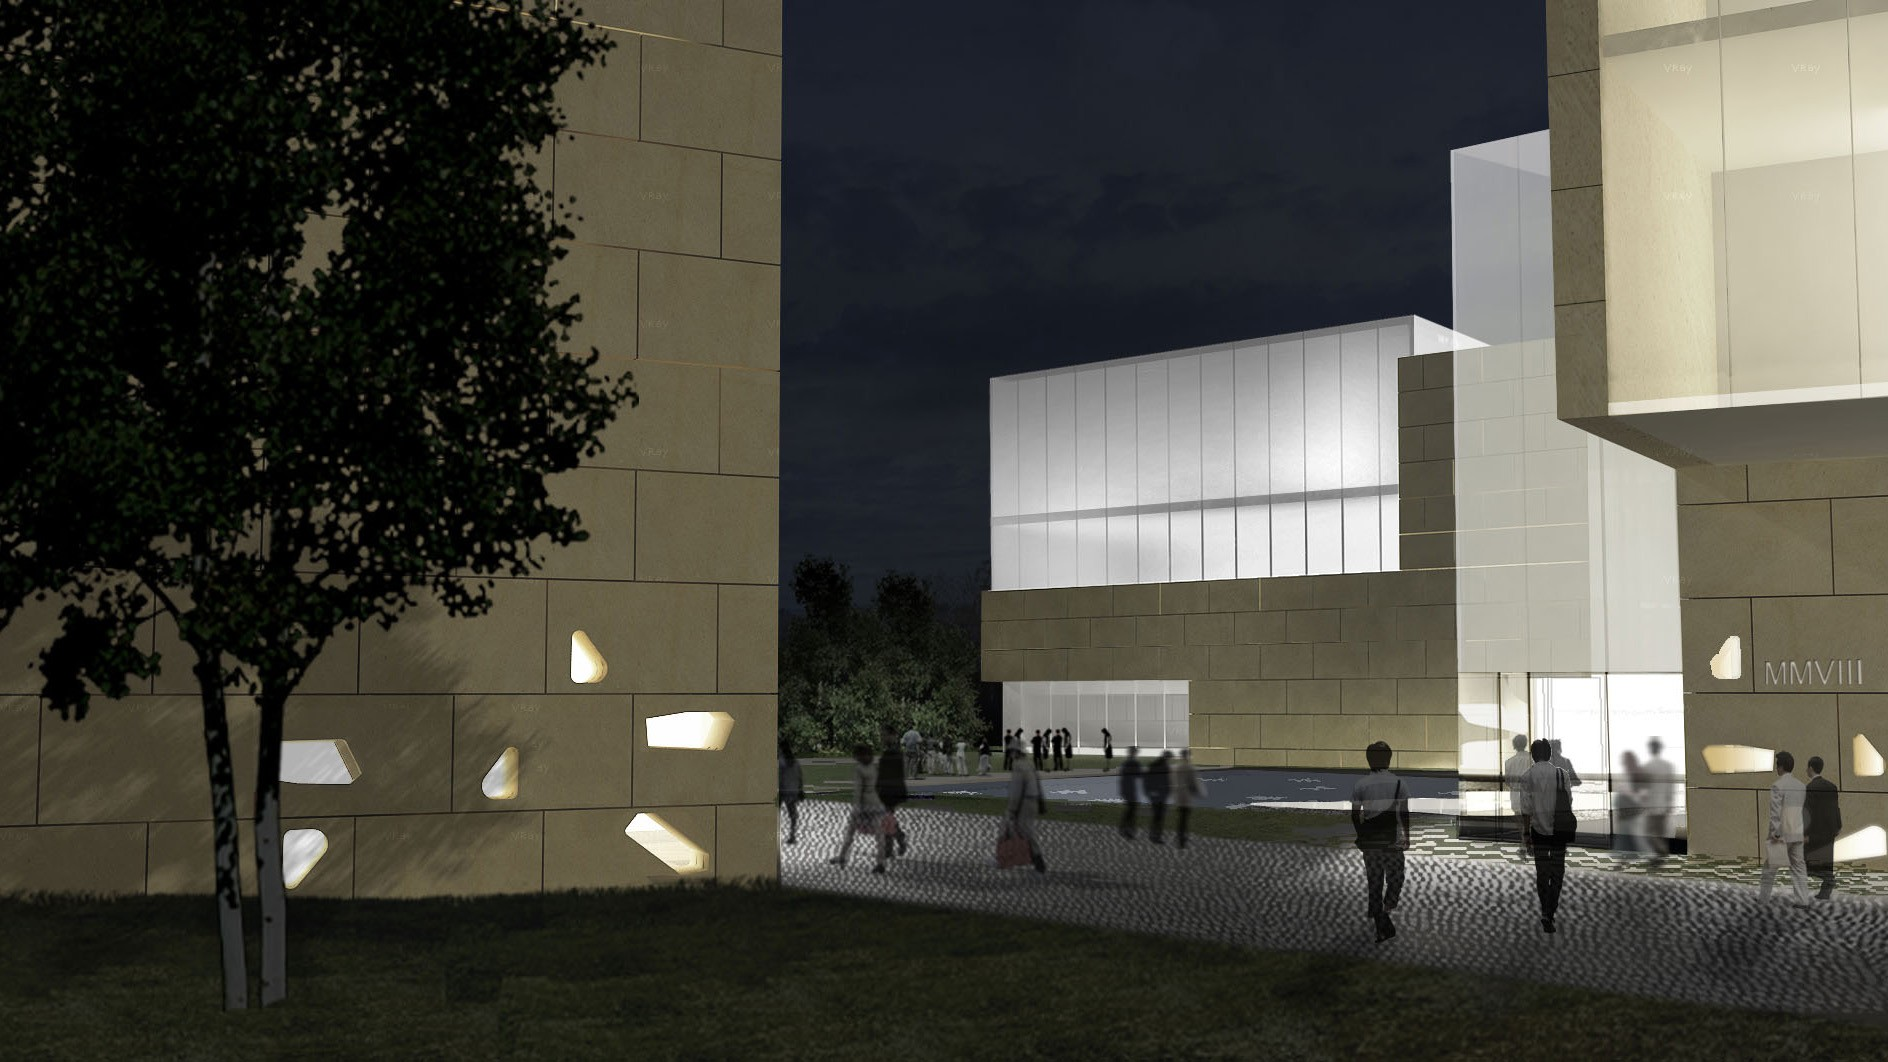 https://s3.us-east-2.amazonaws.com/steven-holl/uploads/projects/project-images/StevenHollArchitects_LCA_NIghtview01C_WH.jpg